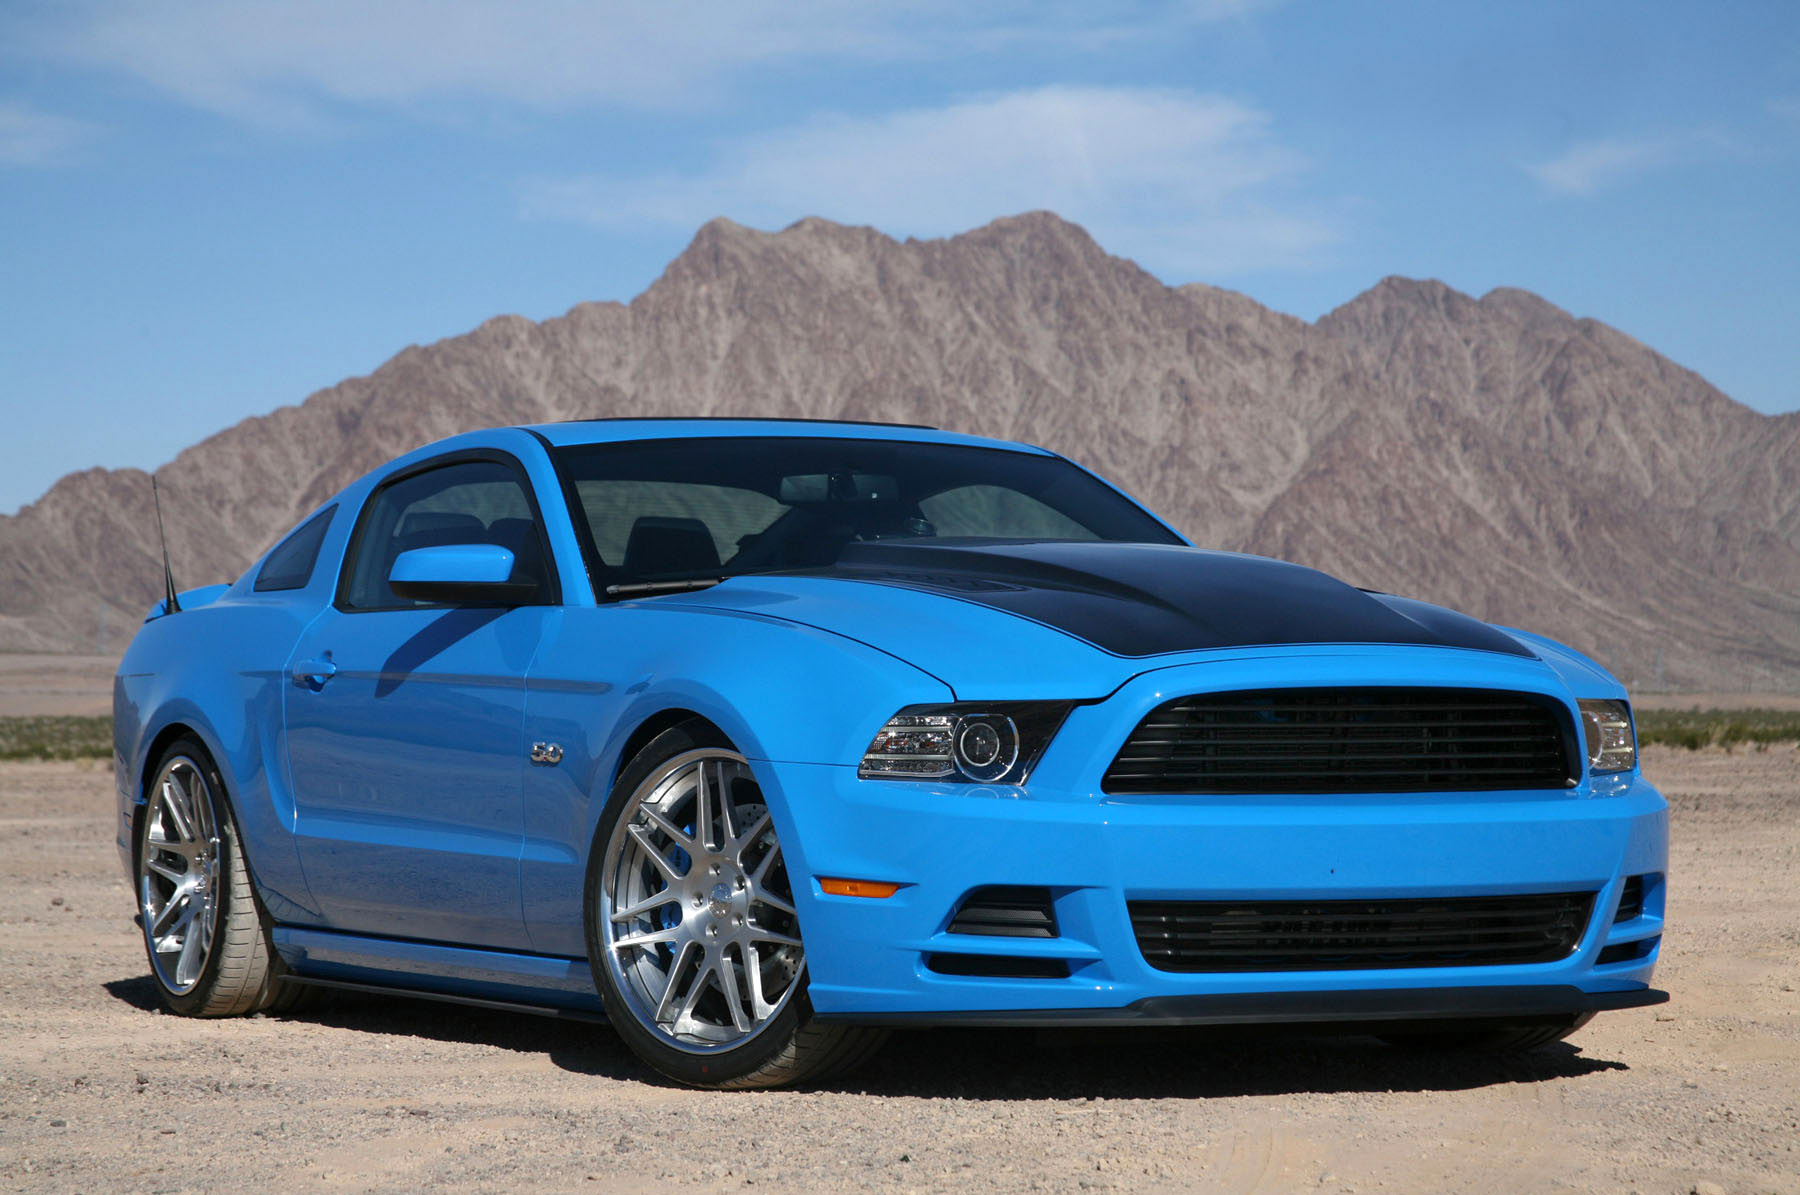 ford mustang and ford mustang gt 1994 2014 buying guide mustangforums. Black Bedroom Furniture Sets. Home Design Ideas